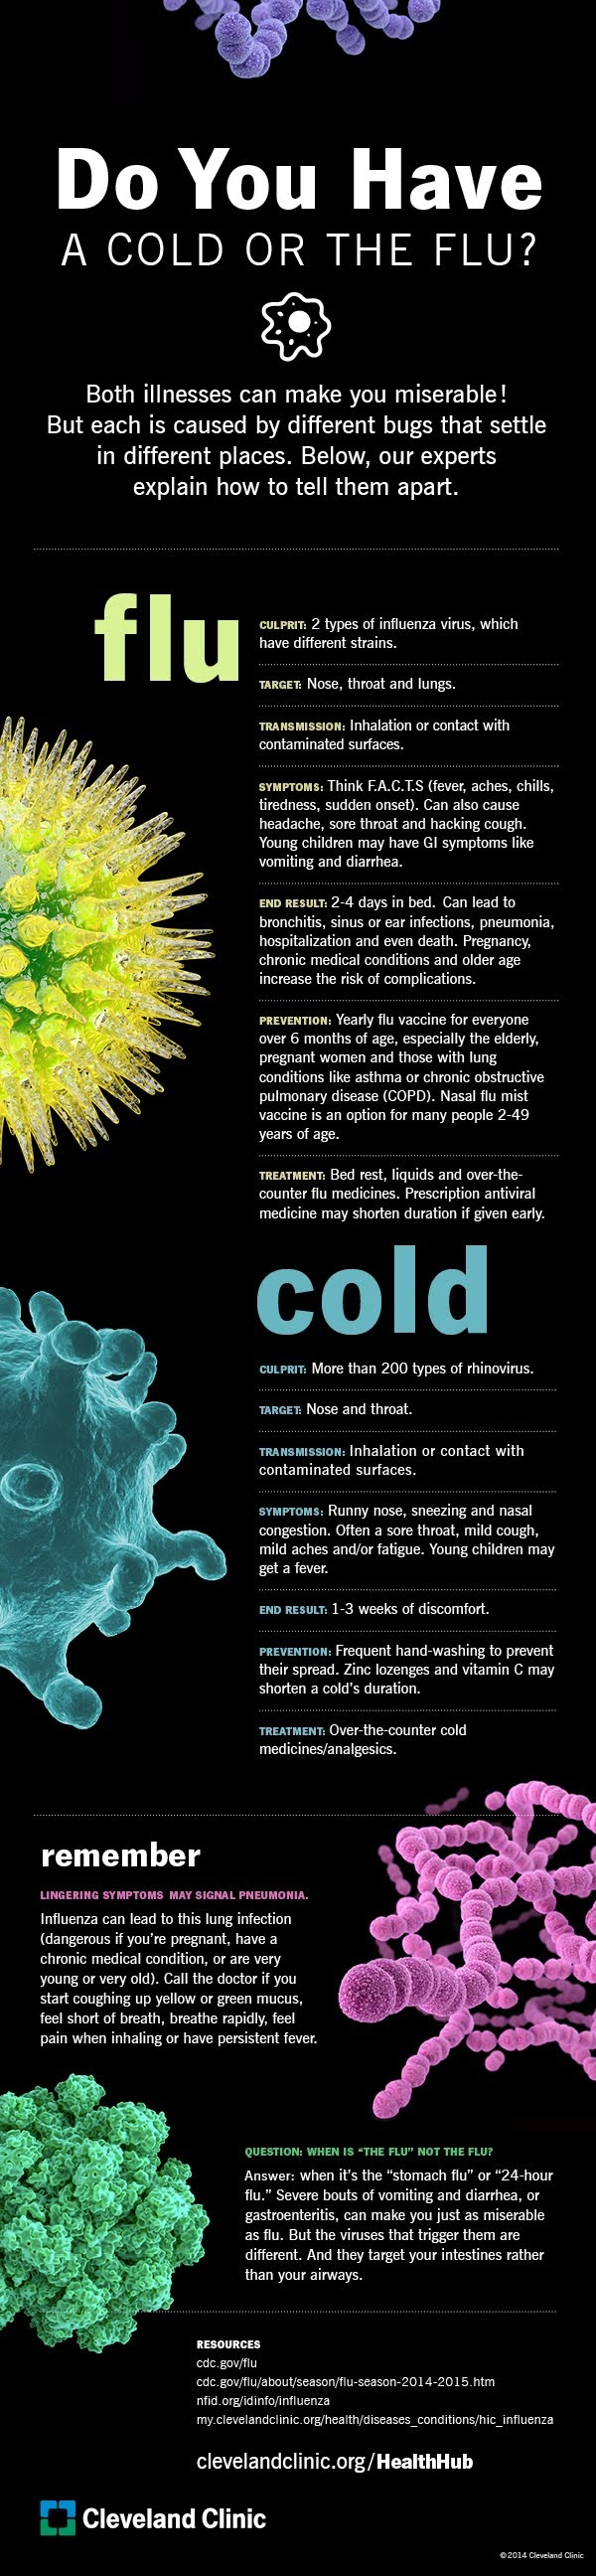 Is It a Cold or the Flu? #infographic